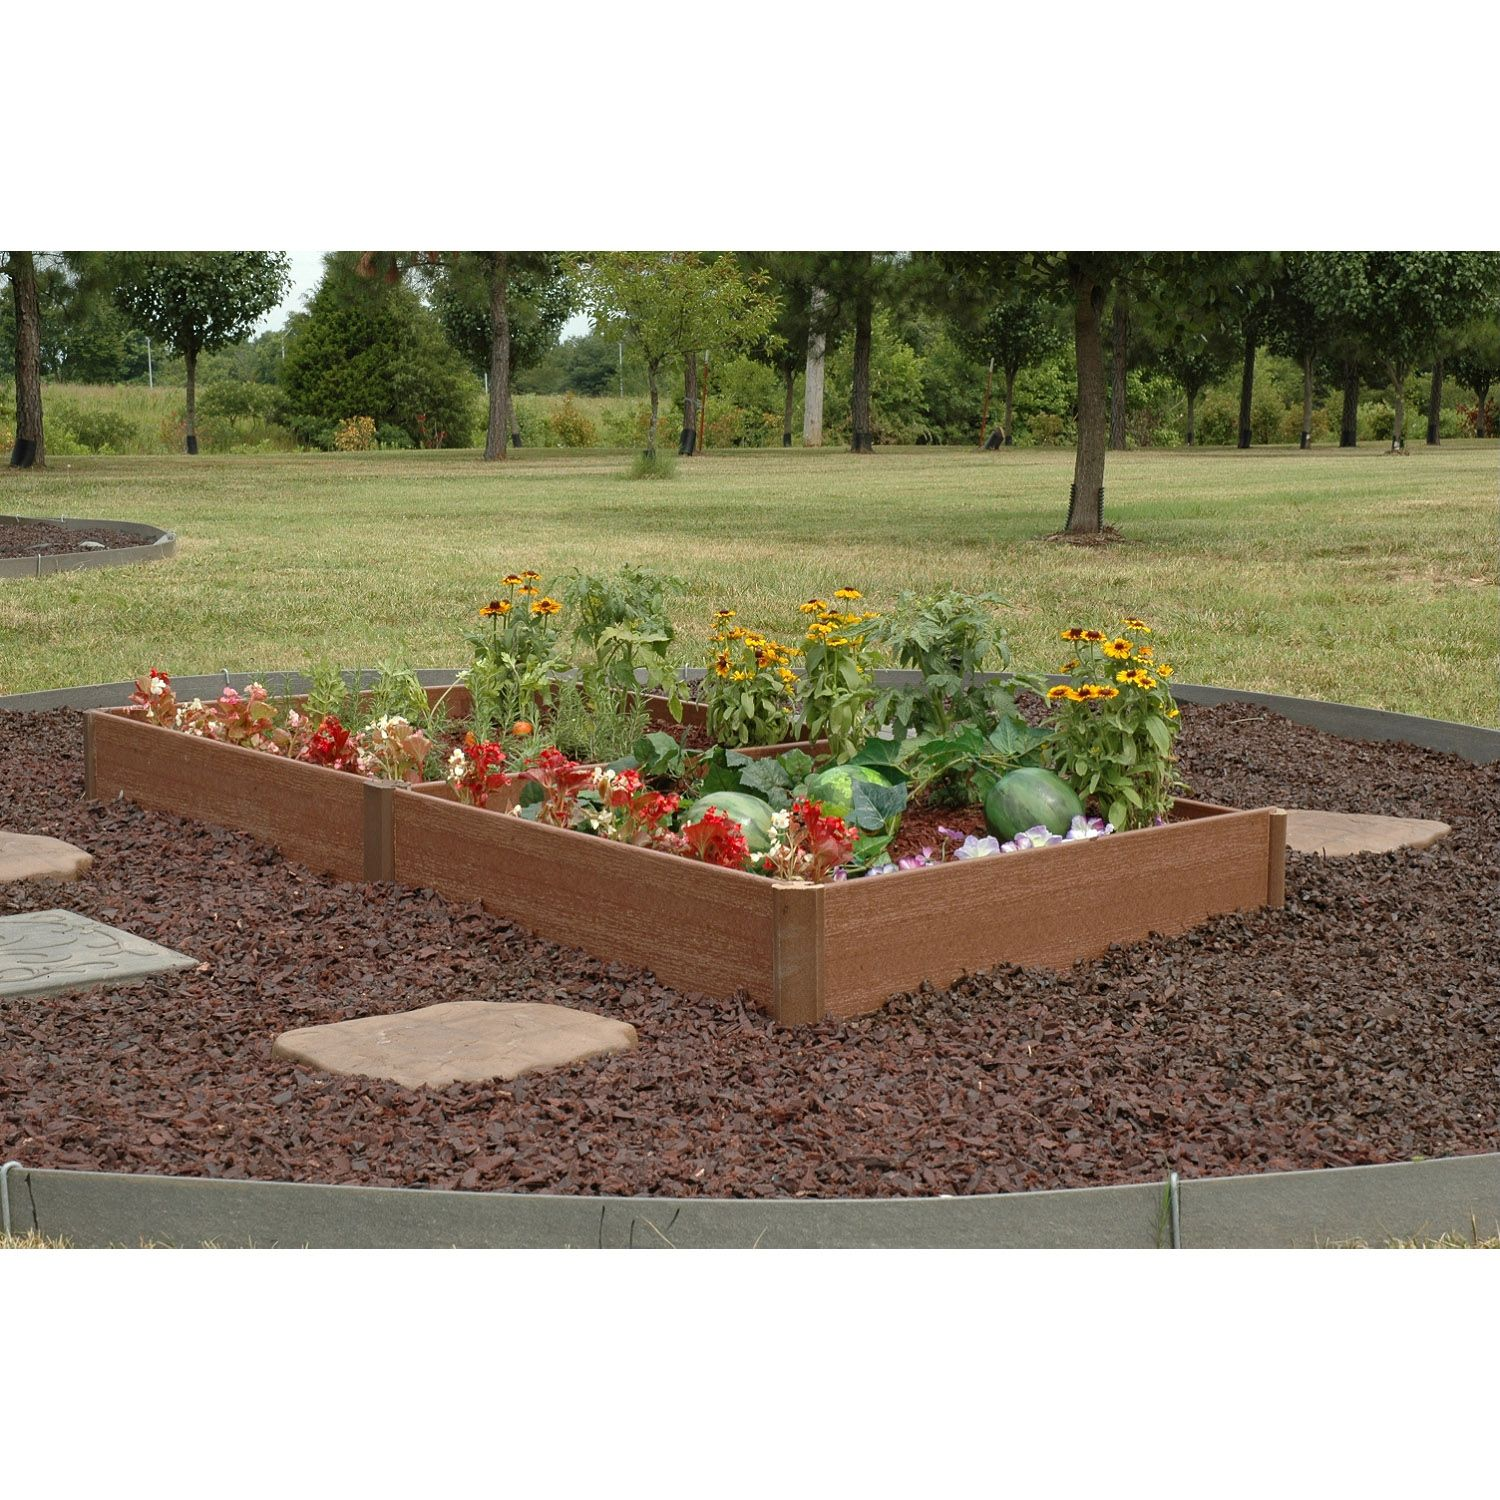 Greenland gardener raised bed garden kit 84quot x 42quot new ebay for Raised bed garden kits